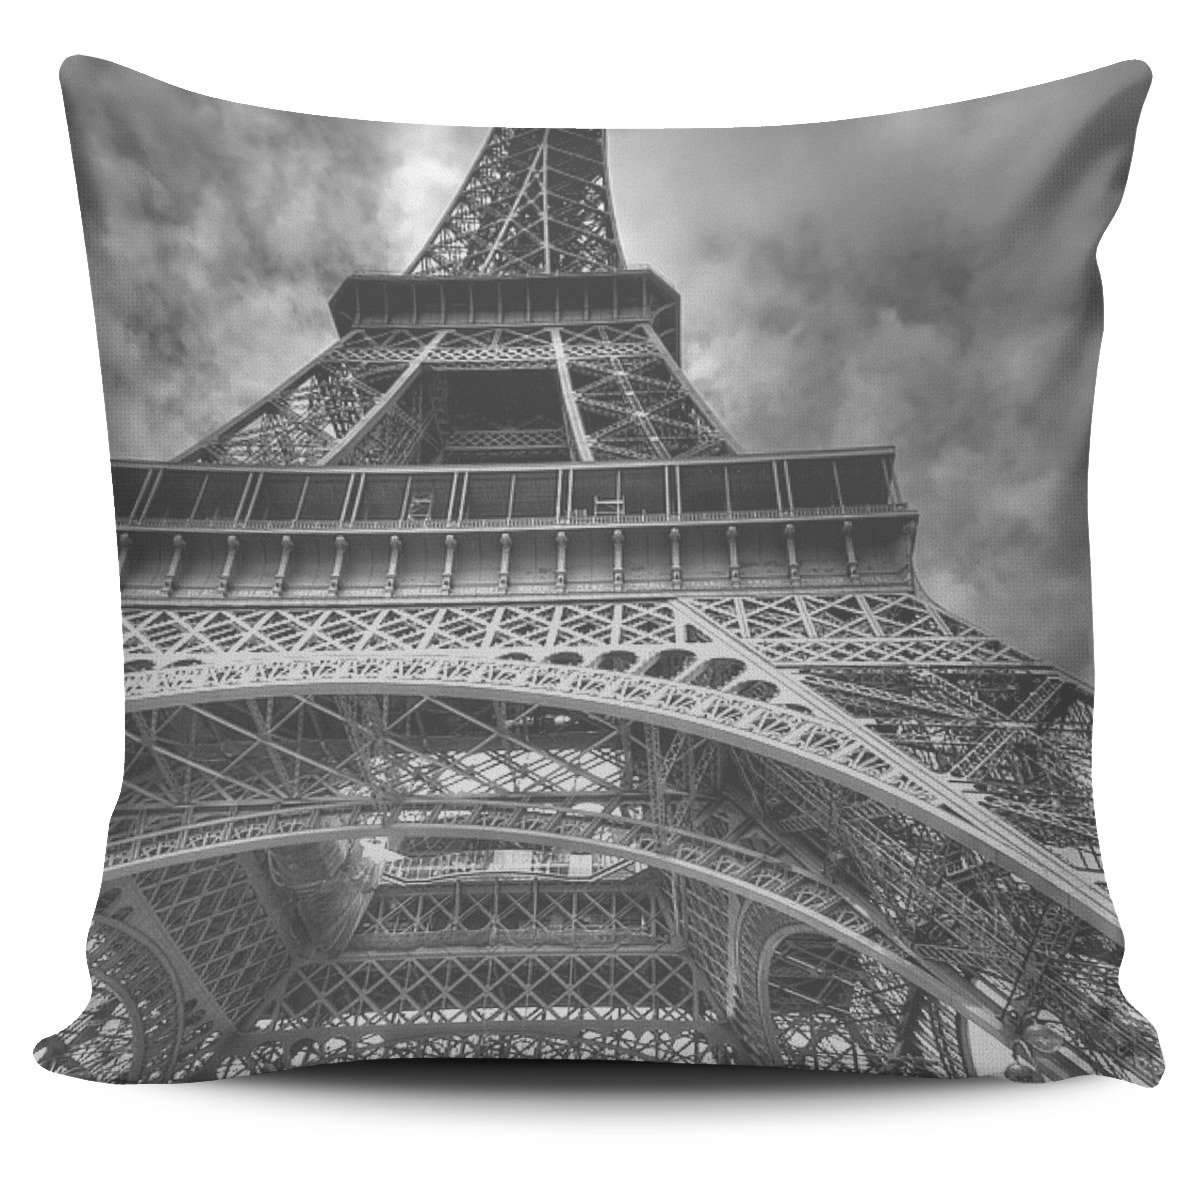 Paris - The Eiffel Tower Pillow Cover Umisfashion Store